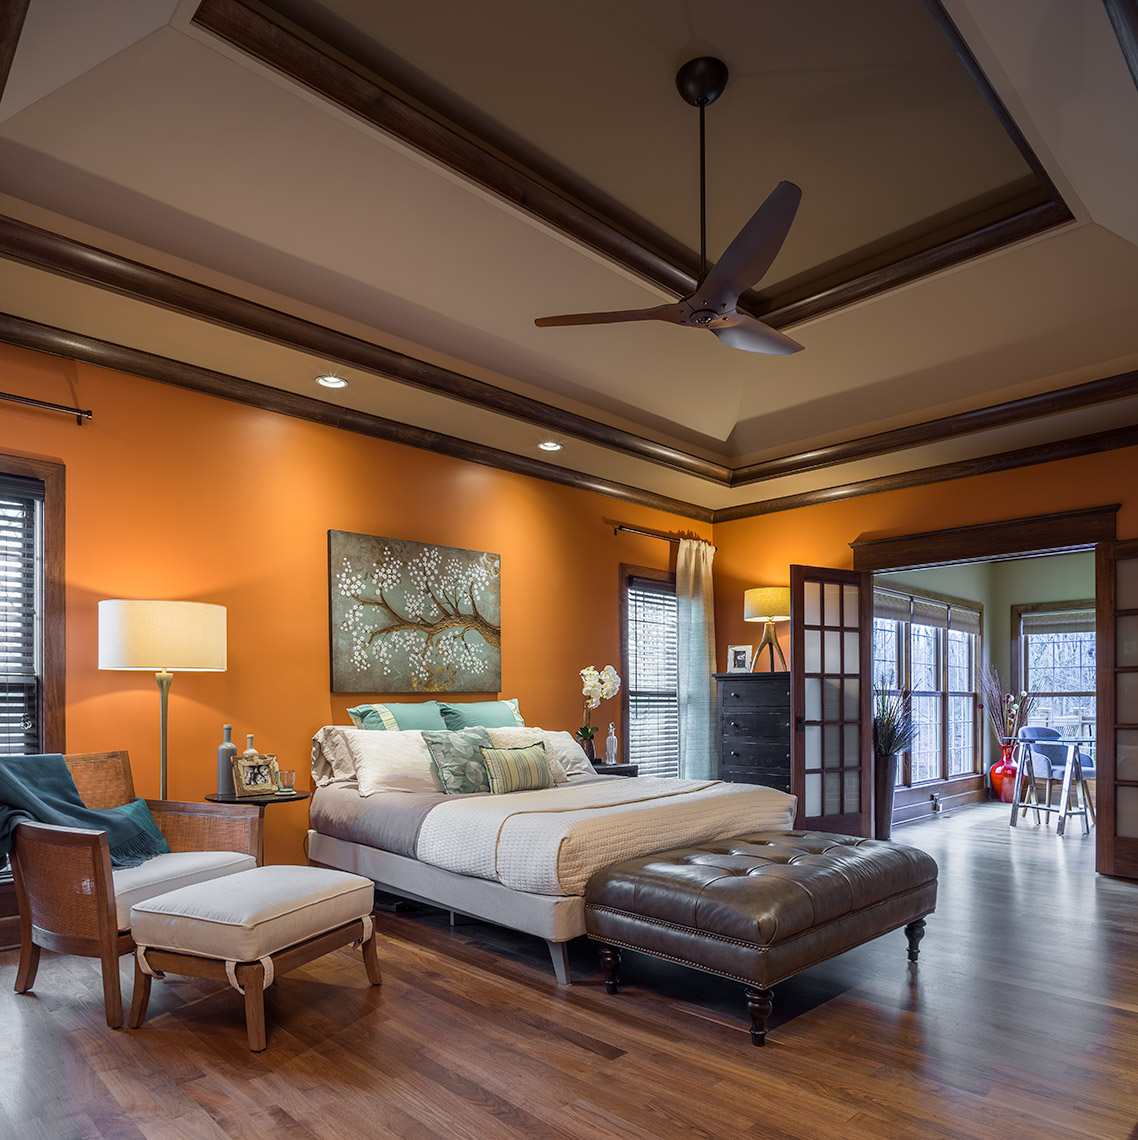 Master bedroom at Louisville, Kentucky residence with Haiku ceiling fan